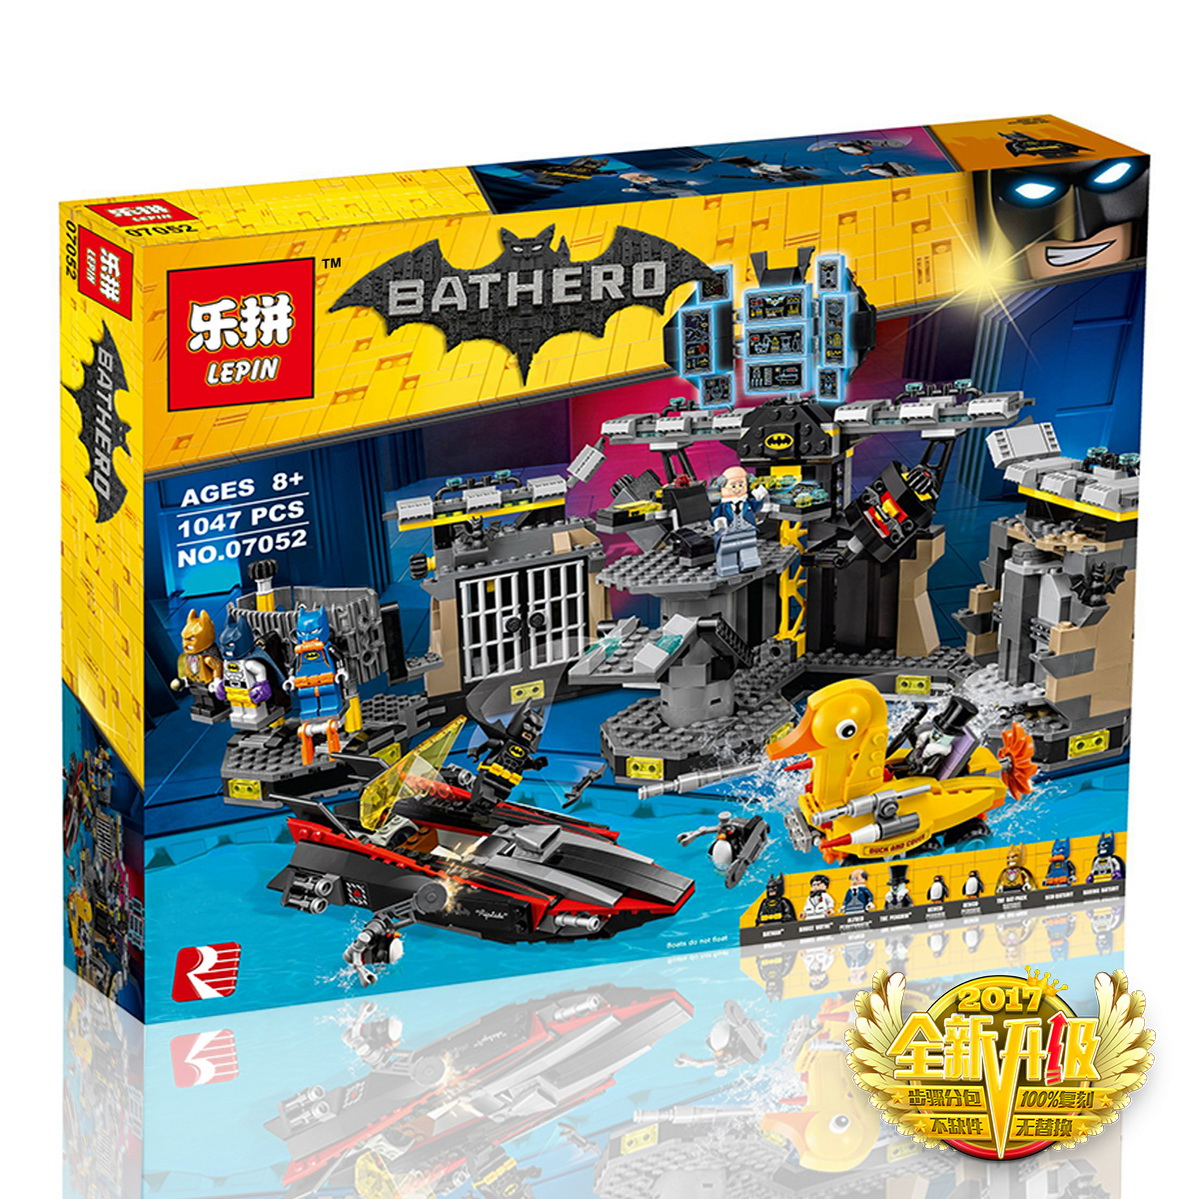 1047+ PCS Building Bricks, LP 07052 Building Blocks Batman Movie 70909 Batcave Break-in.